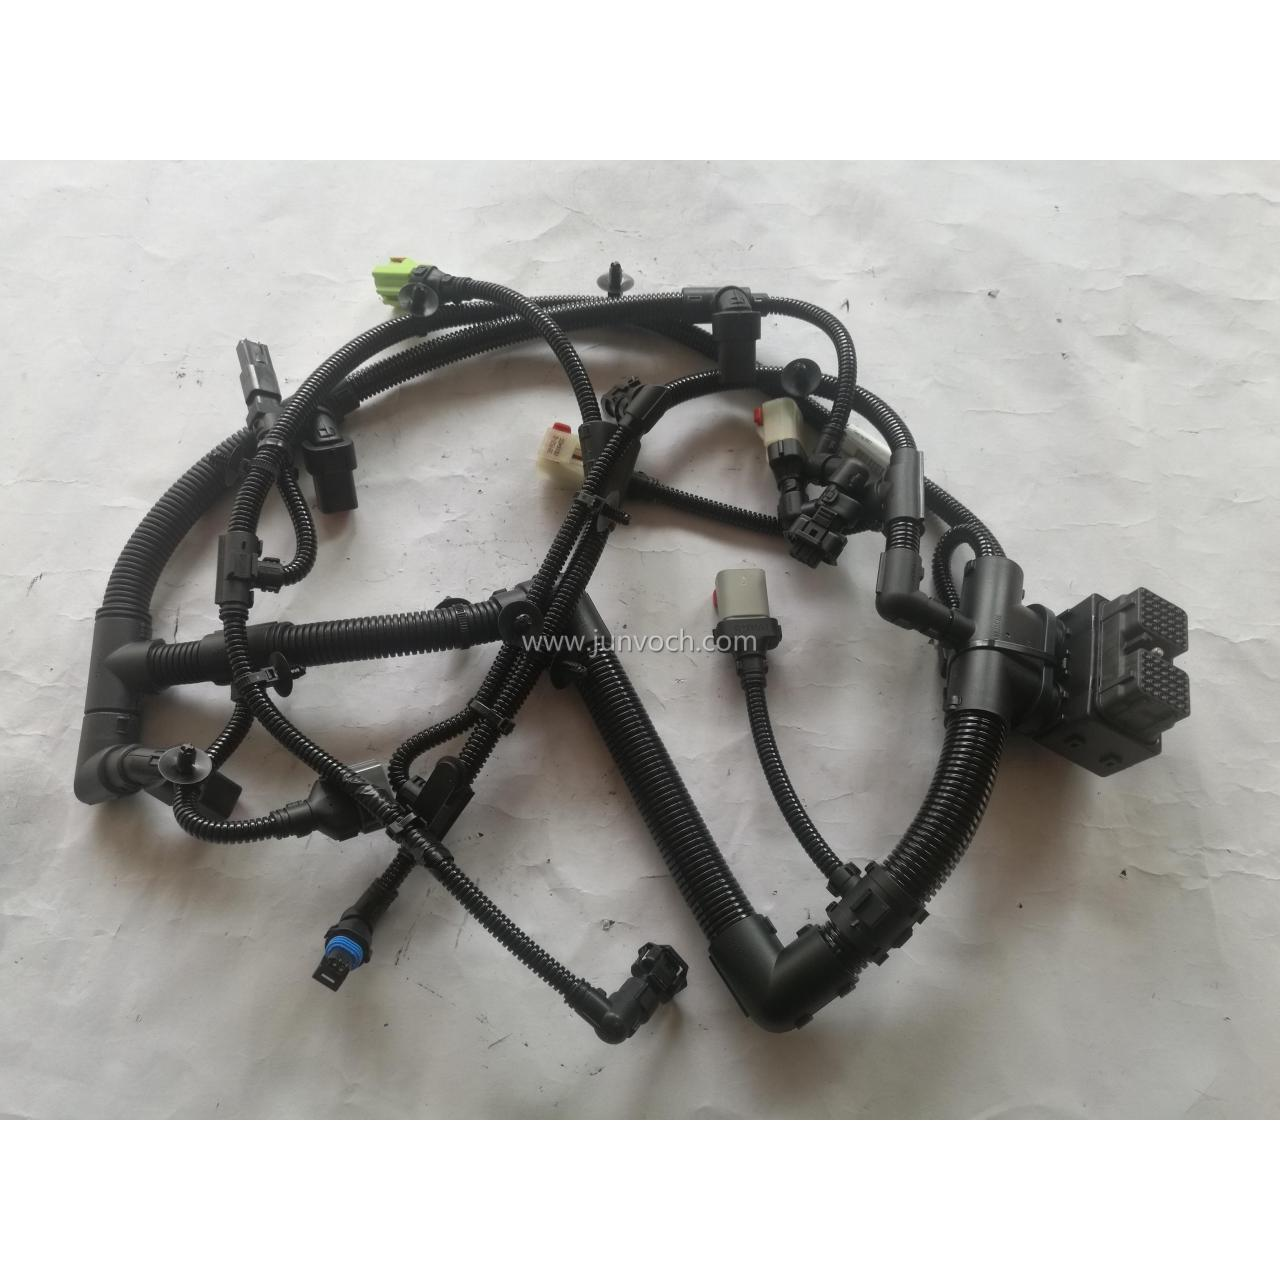 Wholesale Cummins Engine Assy Cummins Isf2.8/3.8 Wiring Harness 5367725 from china suppliers